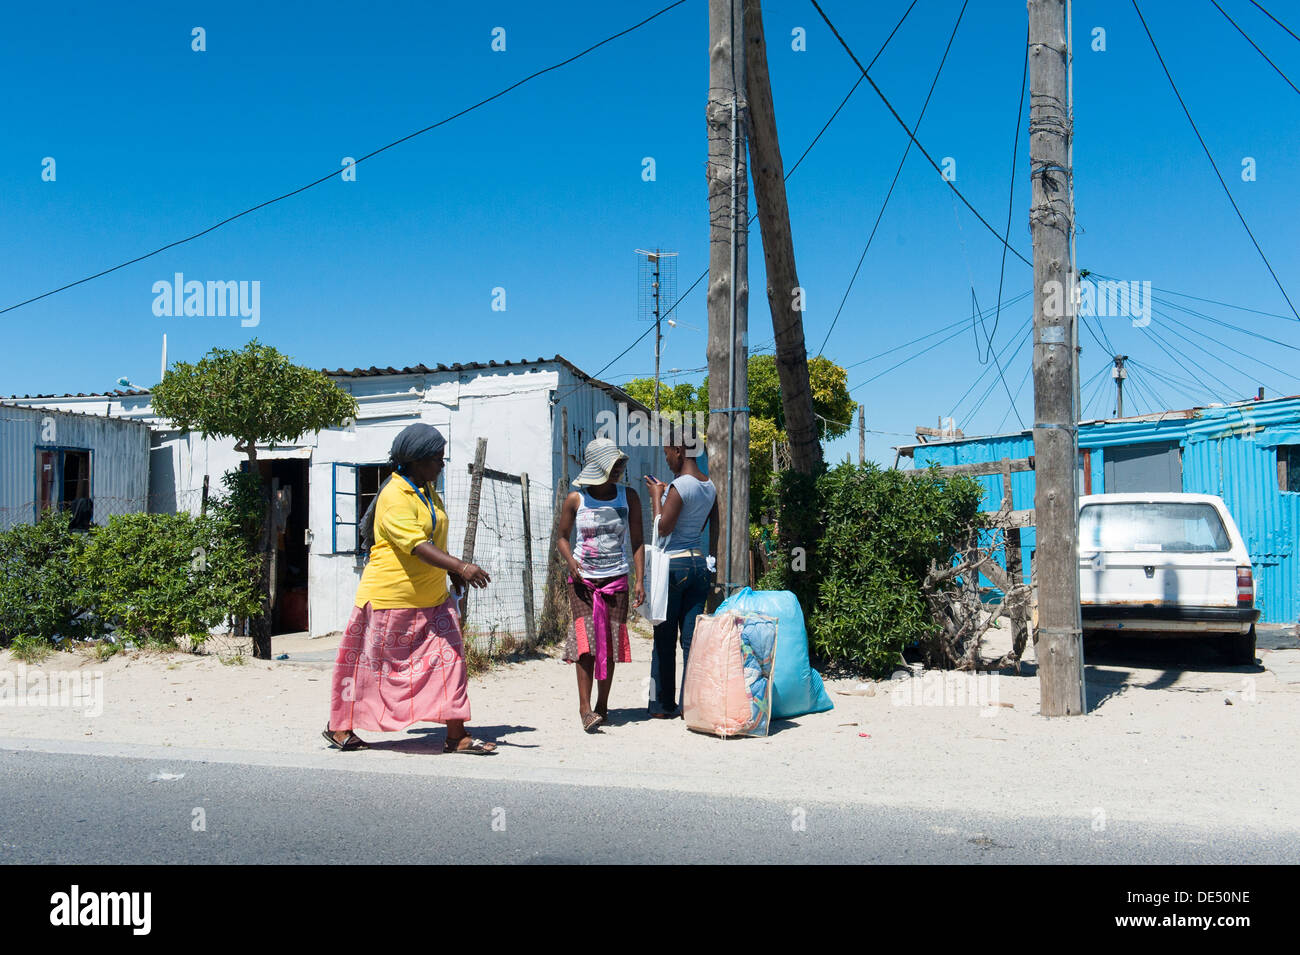 Pedestrians in Khayelitsha, a partially informal township in Cape Town, Western Cape, South Africa Stock Photo